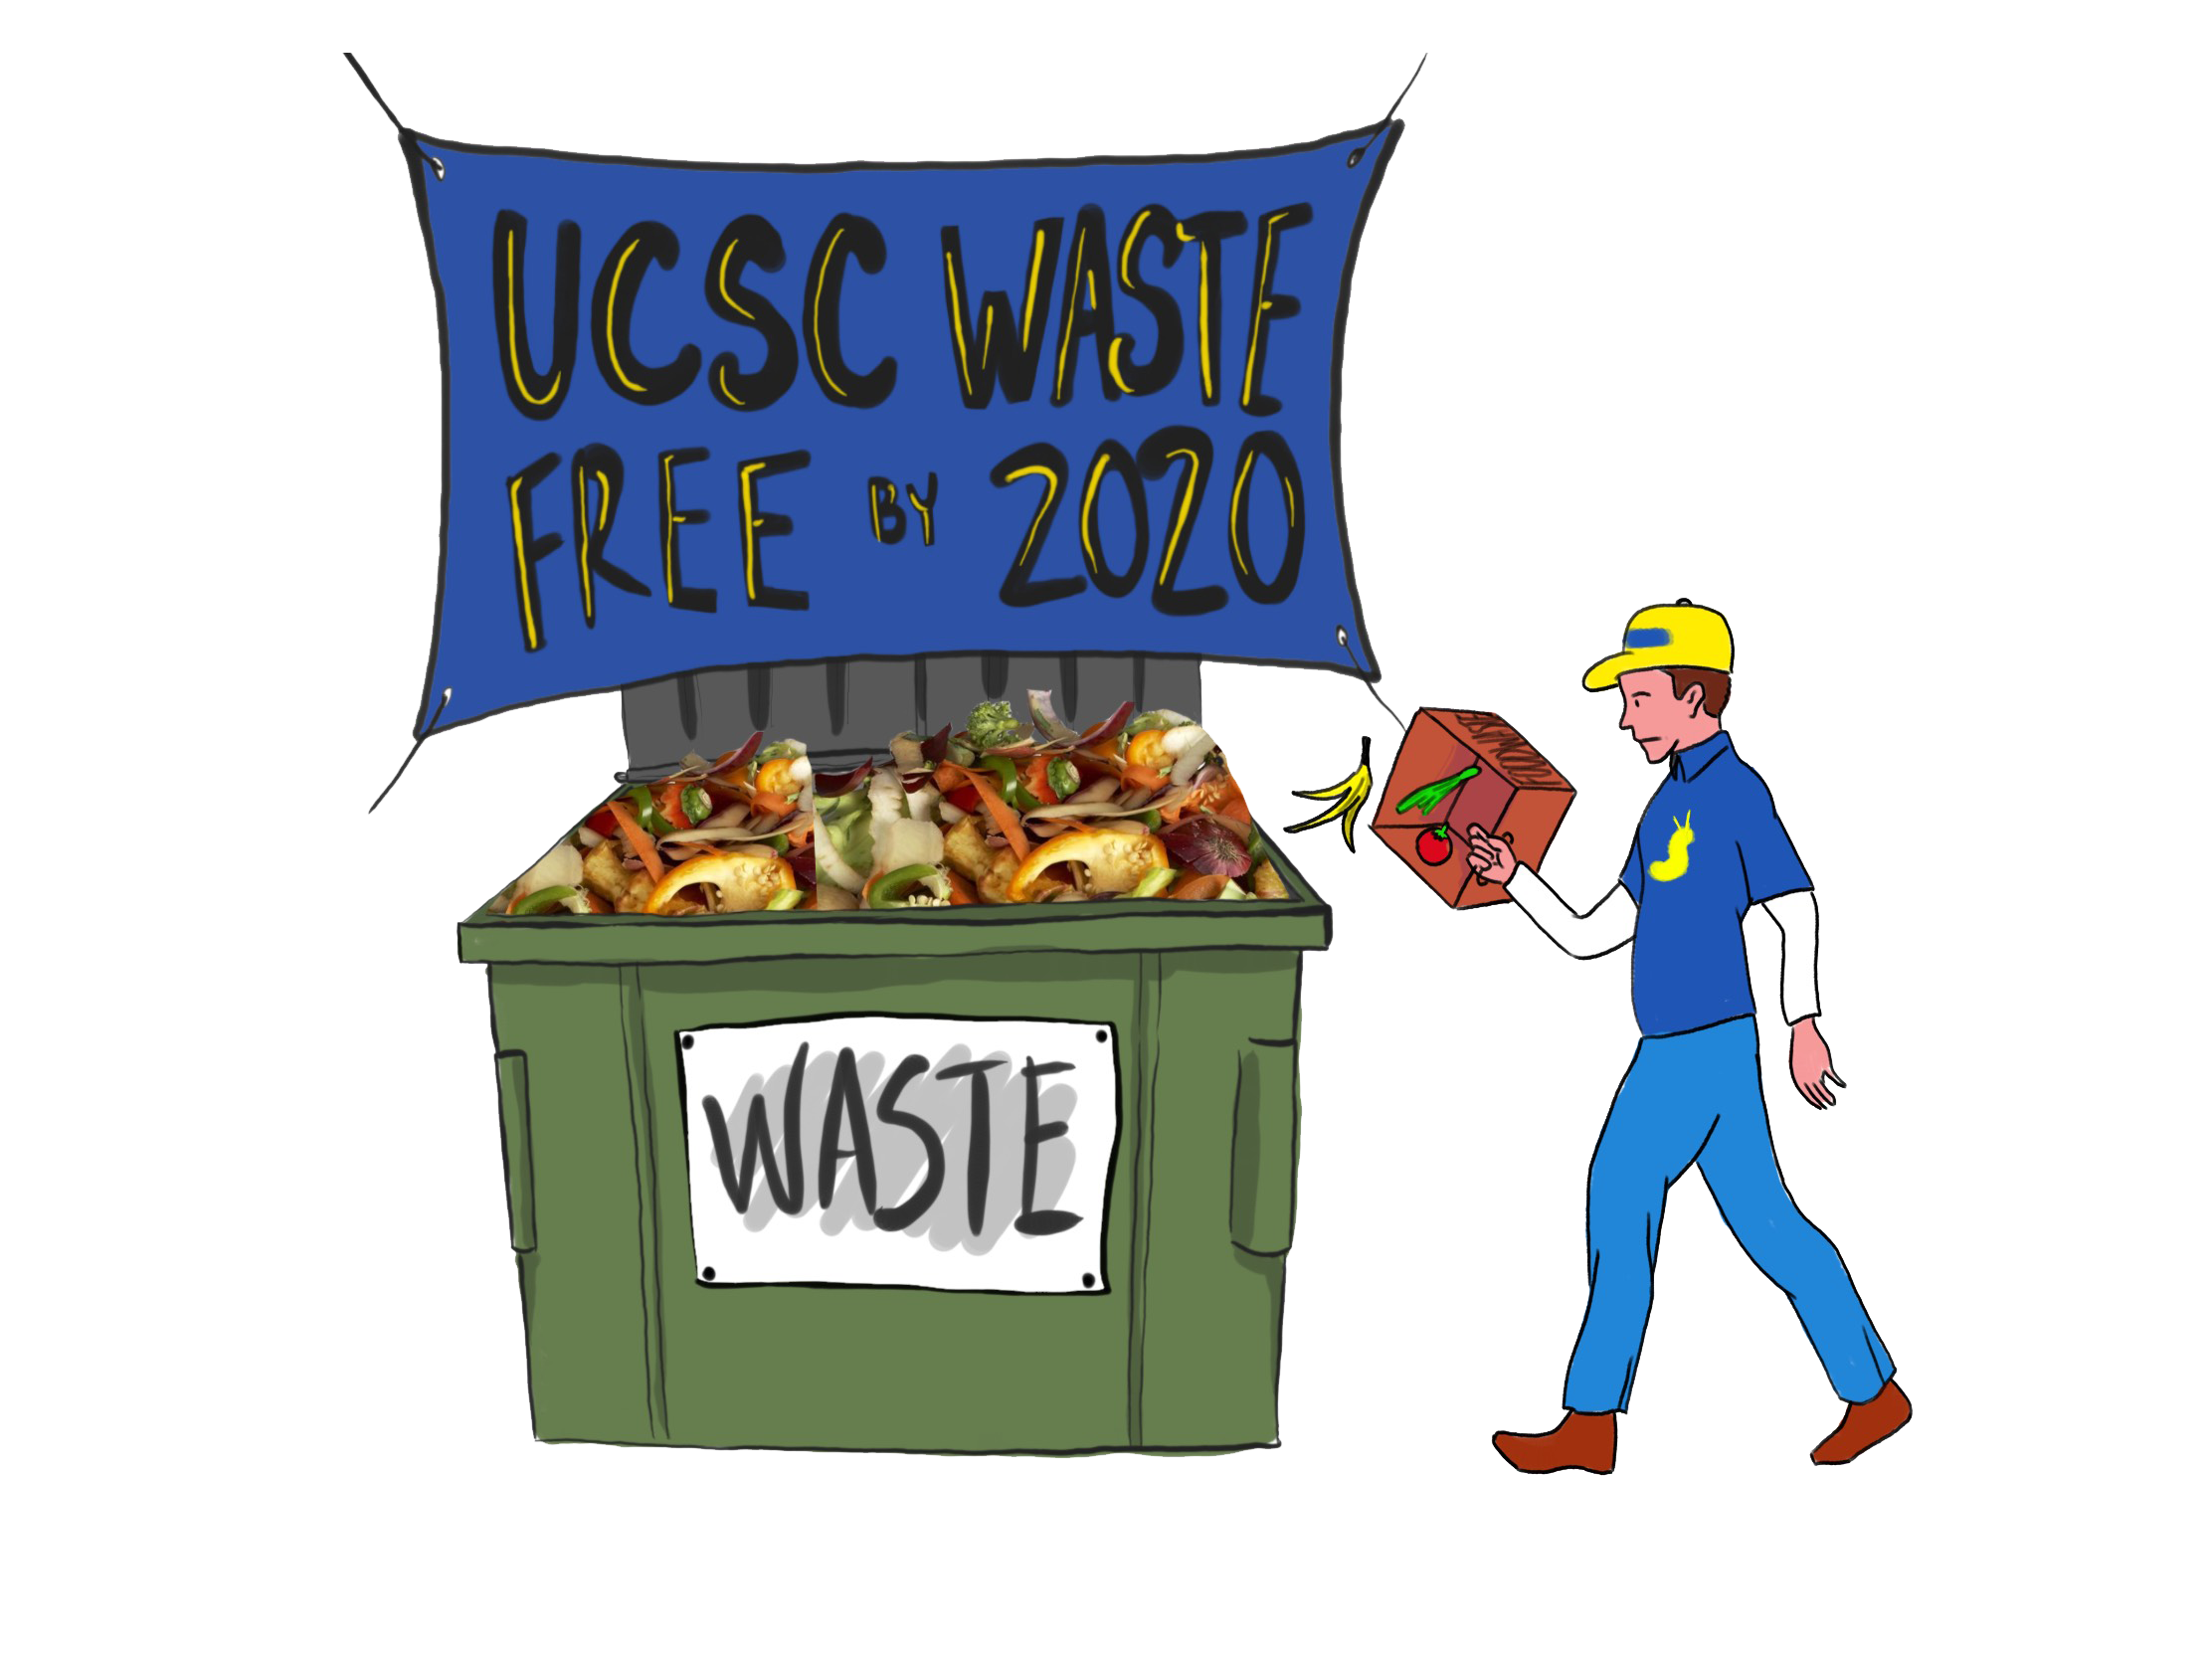 Striving to Reduce Food Waste